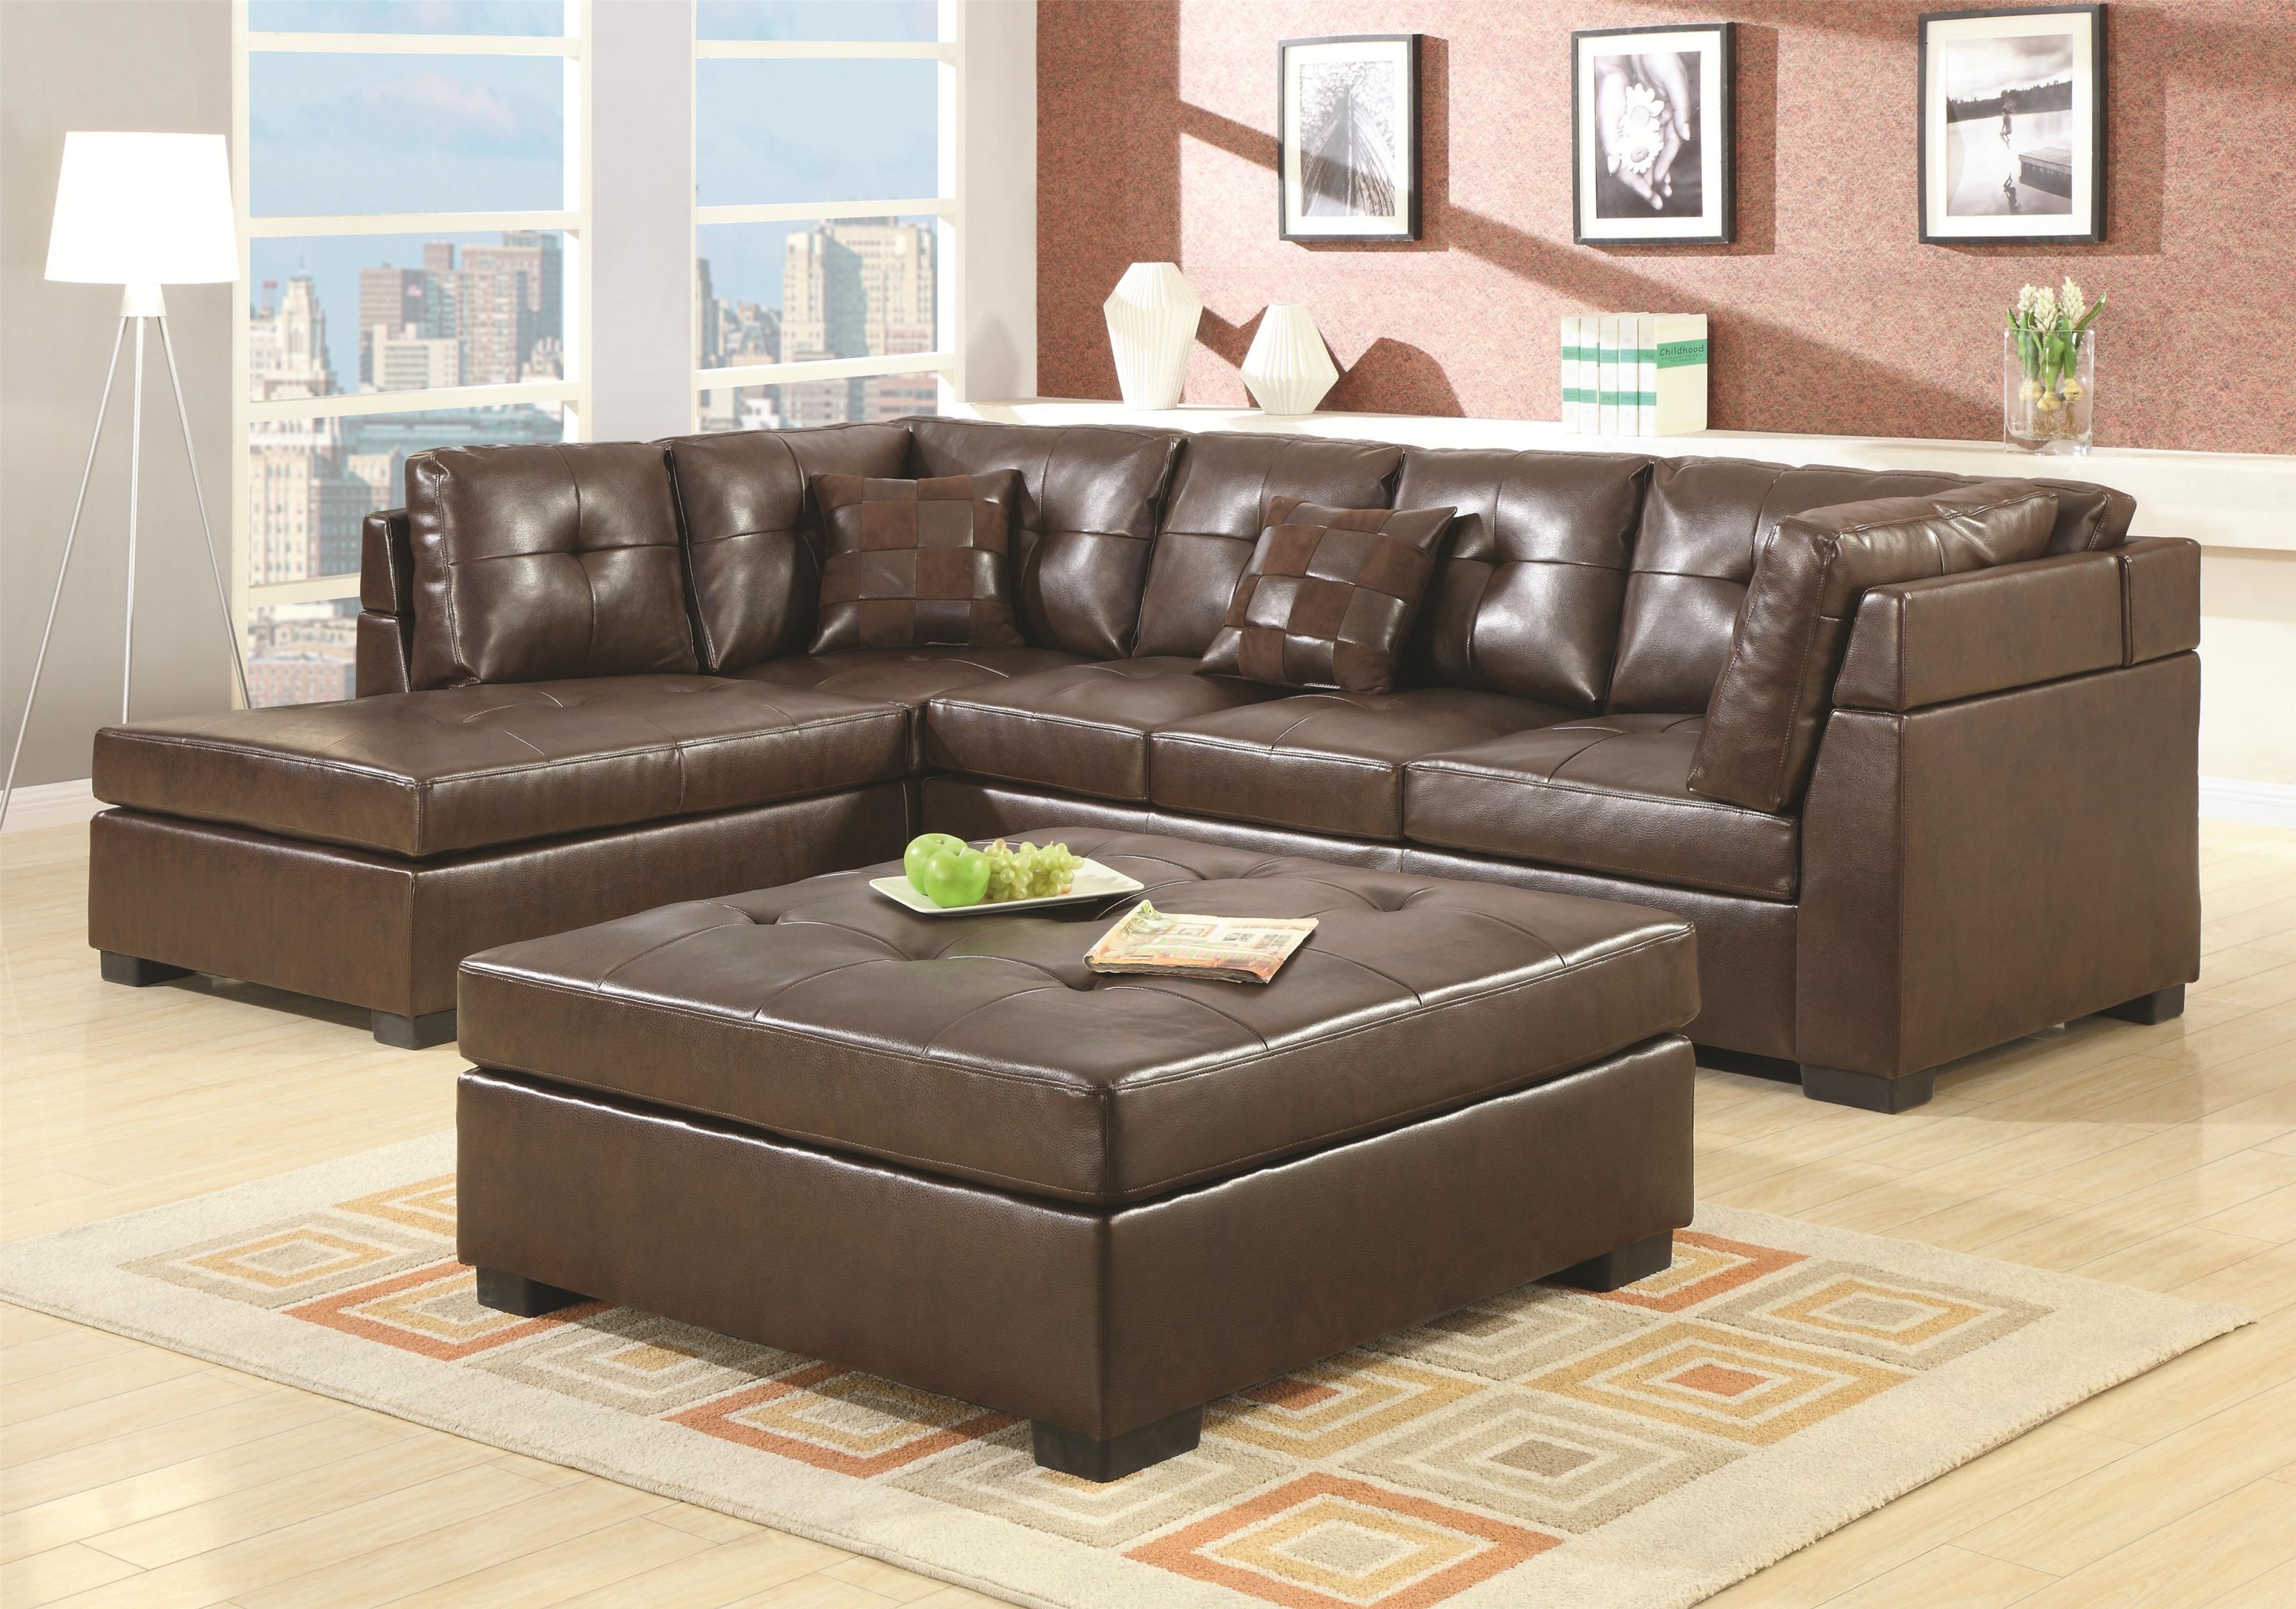 Coaster Darie 500686 Leather Sectional Sofa With Left-Side Chaise for Best of Leather Sectional Sofa